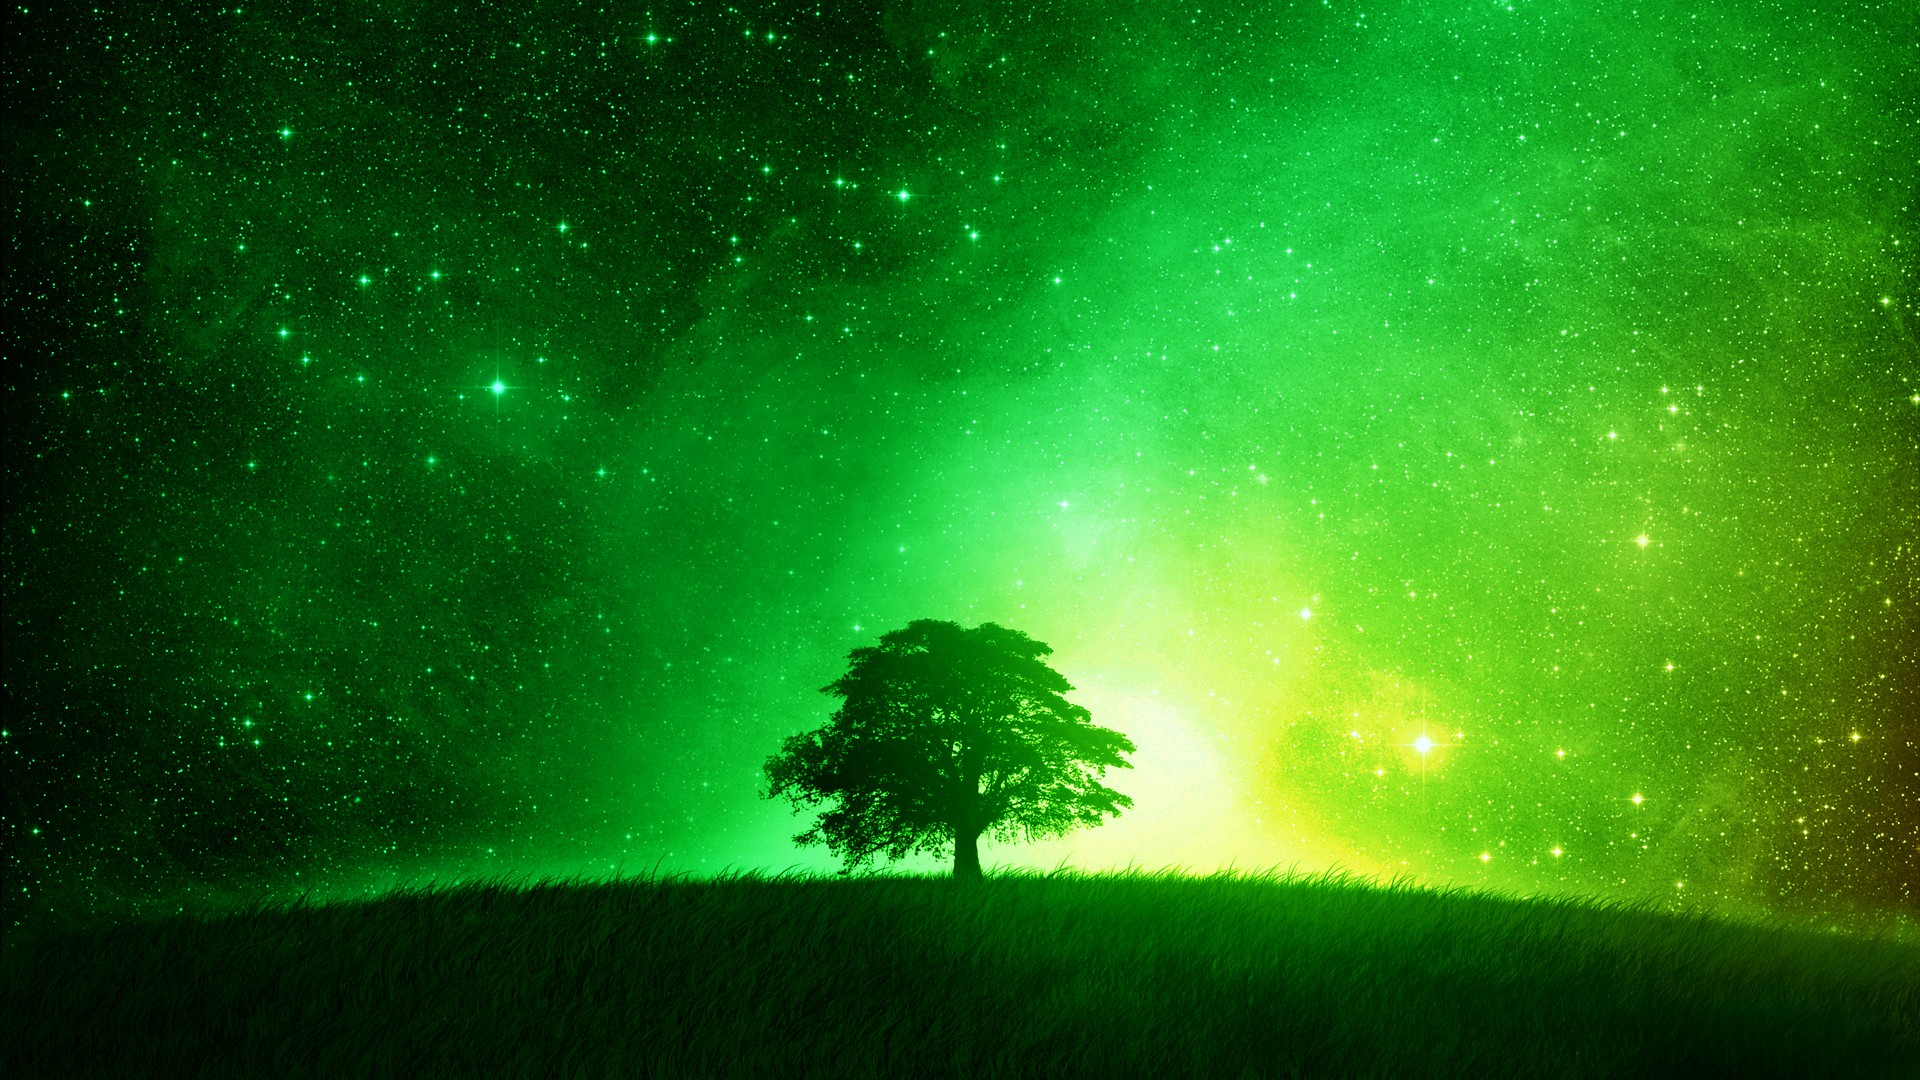 HD Lime Green Backgrounds Amazing Images Background Photos 1080p 1920x1080